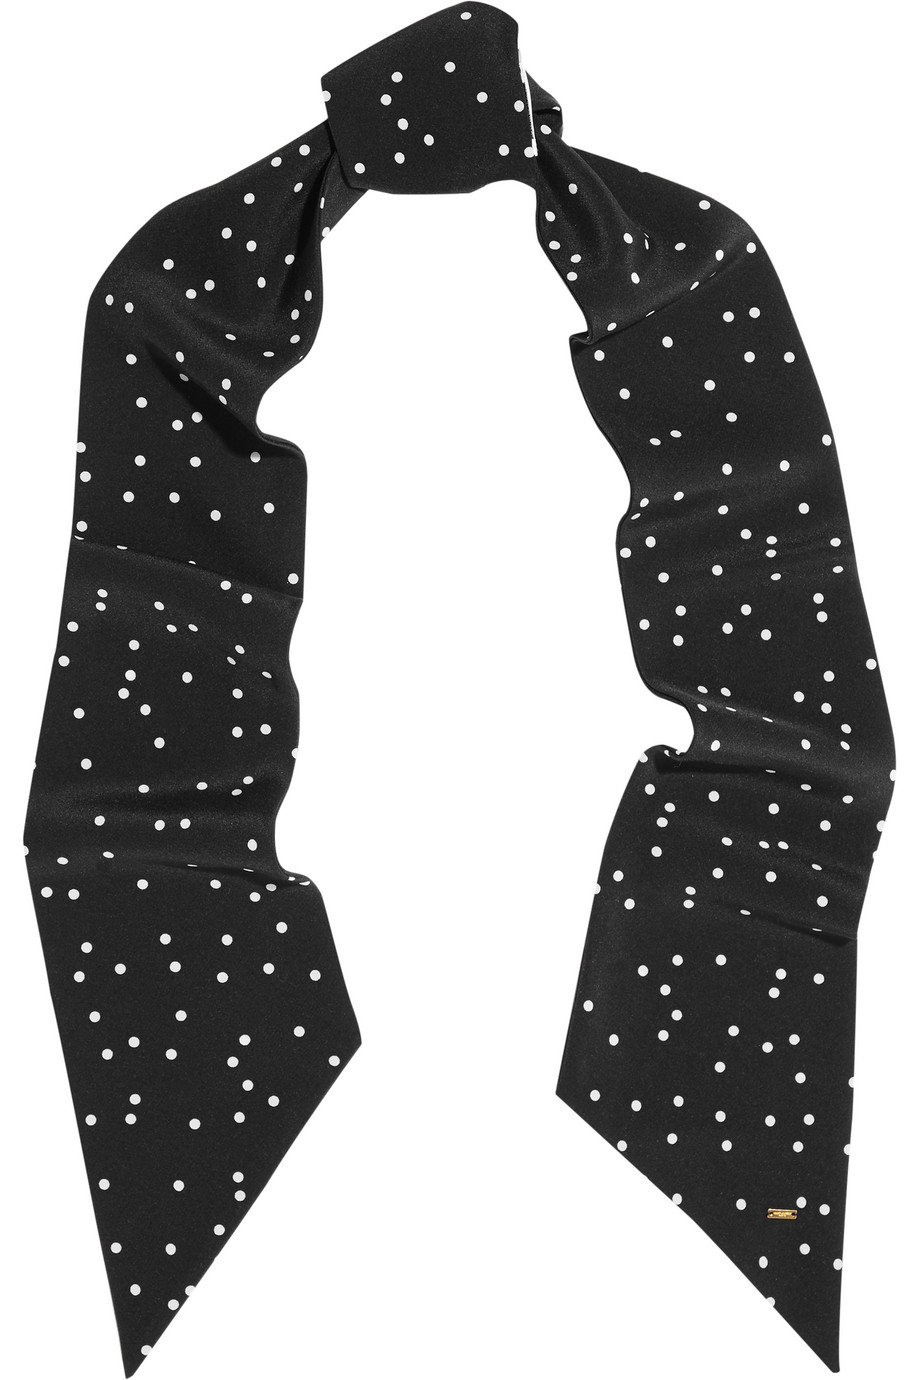 Saint Laurent Polka-Dot Silk-Georgette Scarf, Black, Women's, Size: One Size